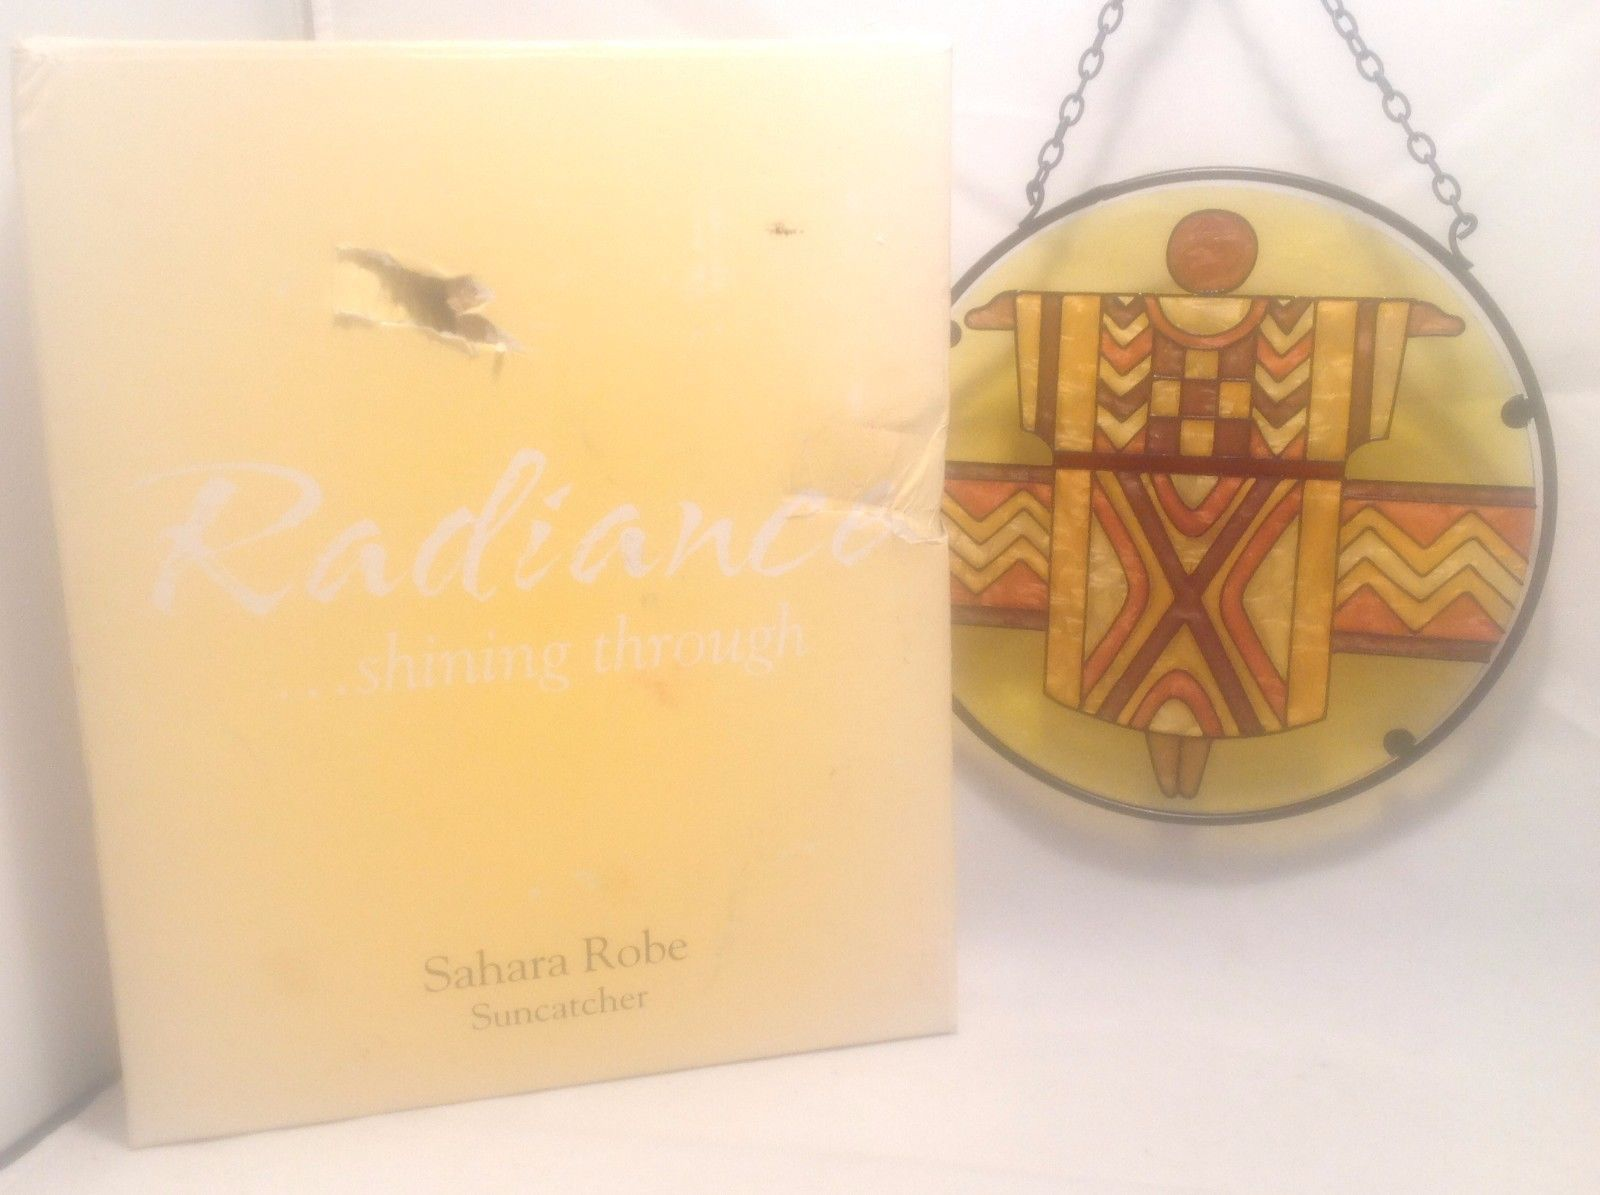 "New In Box Never Used Radiance Suncatcher Sahara Robe 6 1/2"" Diameter 3"" Chain"